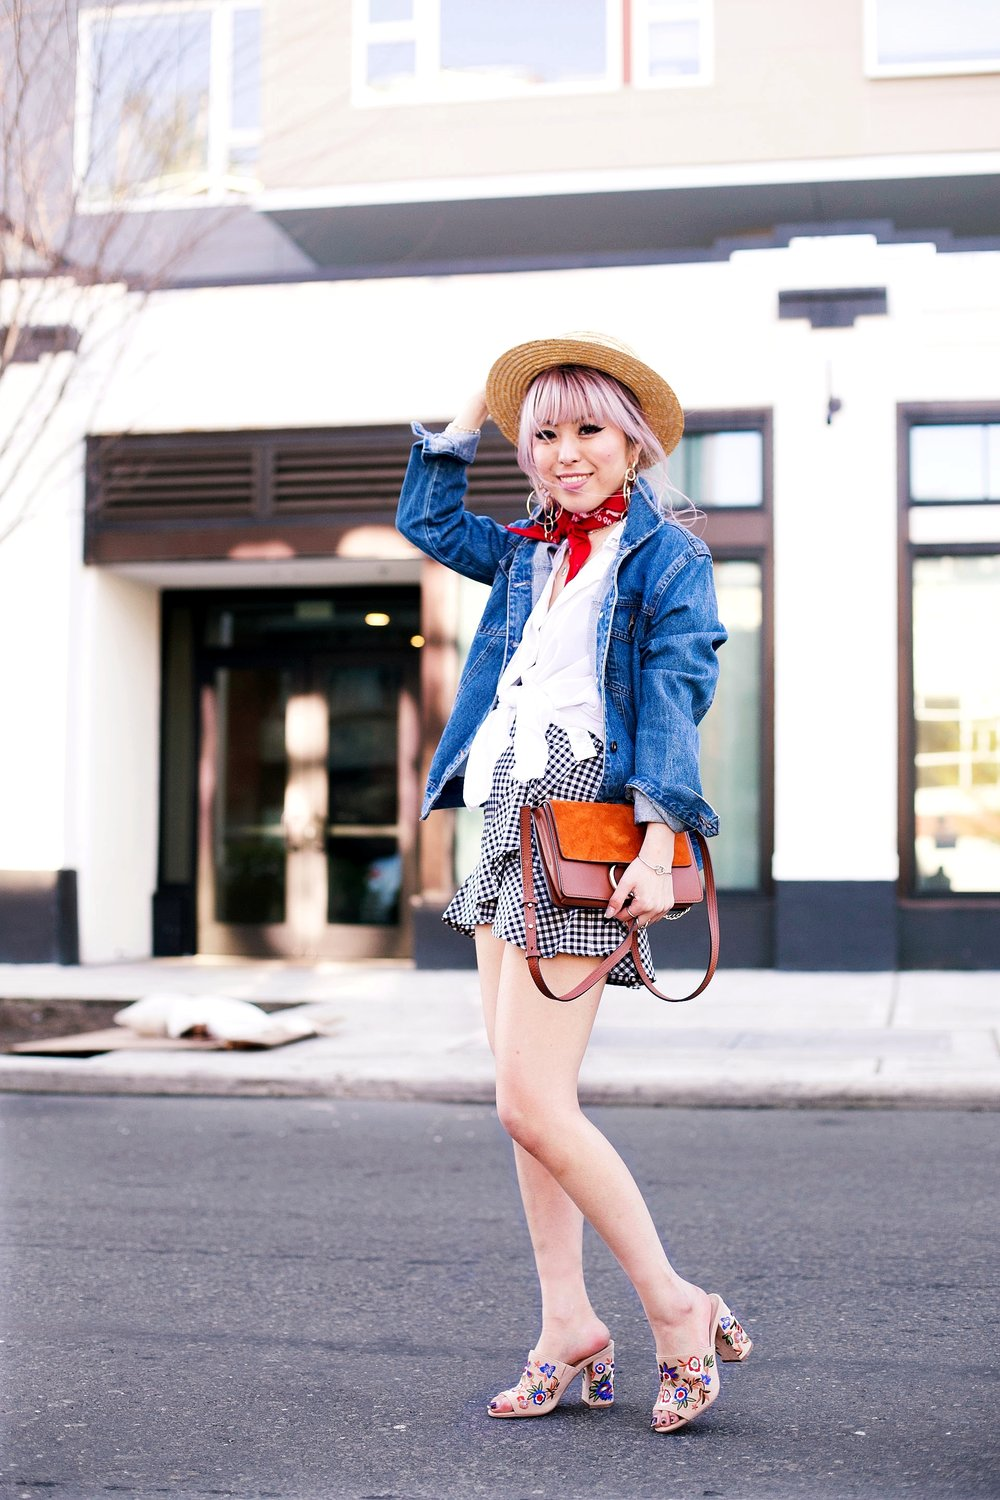 Forever 21 Denim jacket_H&M Straw hat_Urban Outfitter Red bandana_kohls kohl's button up shirt_ZARA statement earrings_H&M gingham mini skirt_Chloe Faye mini bag_ALDO Embroidered Mules_Aikas Love Closet_Seattle Fashion style logger_petite fashion 8